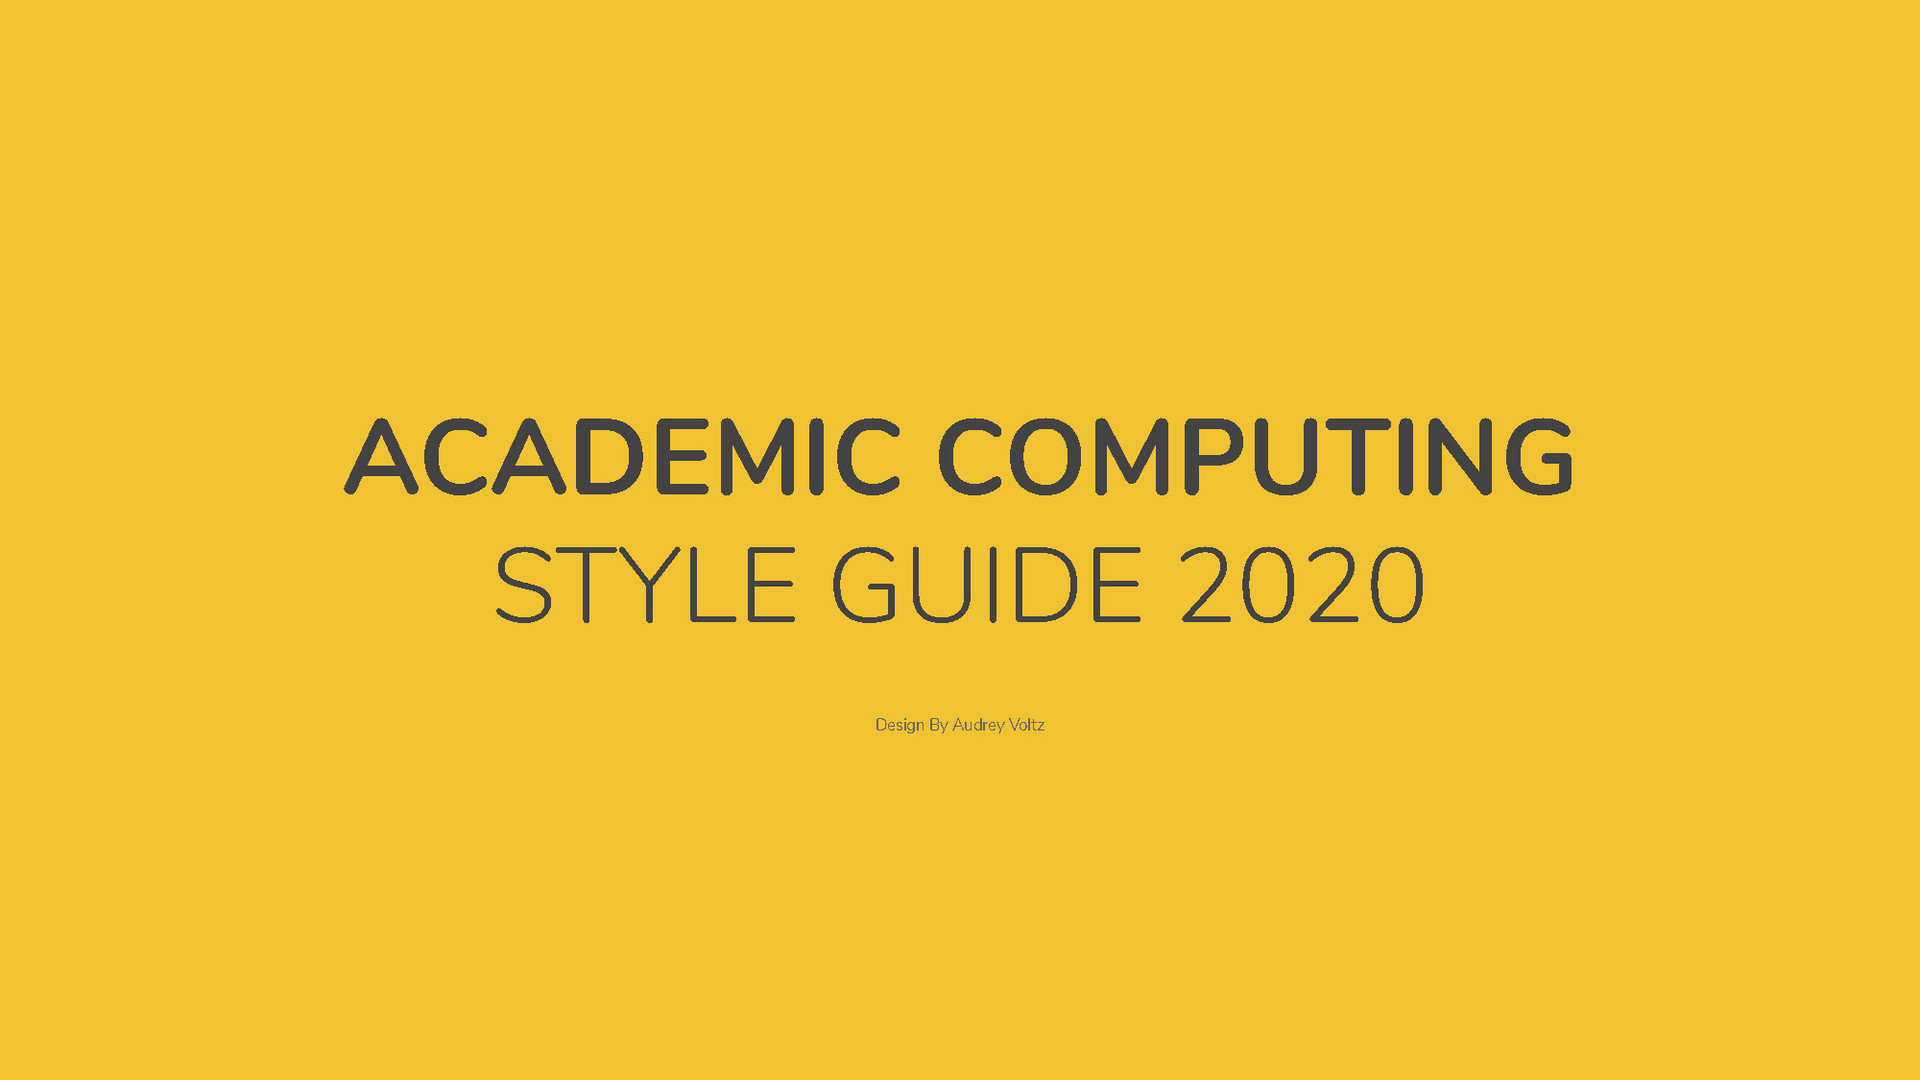 ACADEMIC COMPUTING STYLE GUIDE